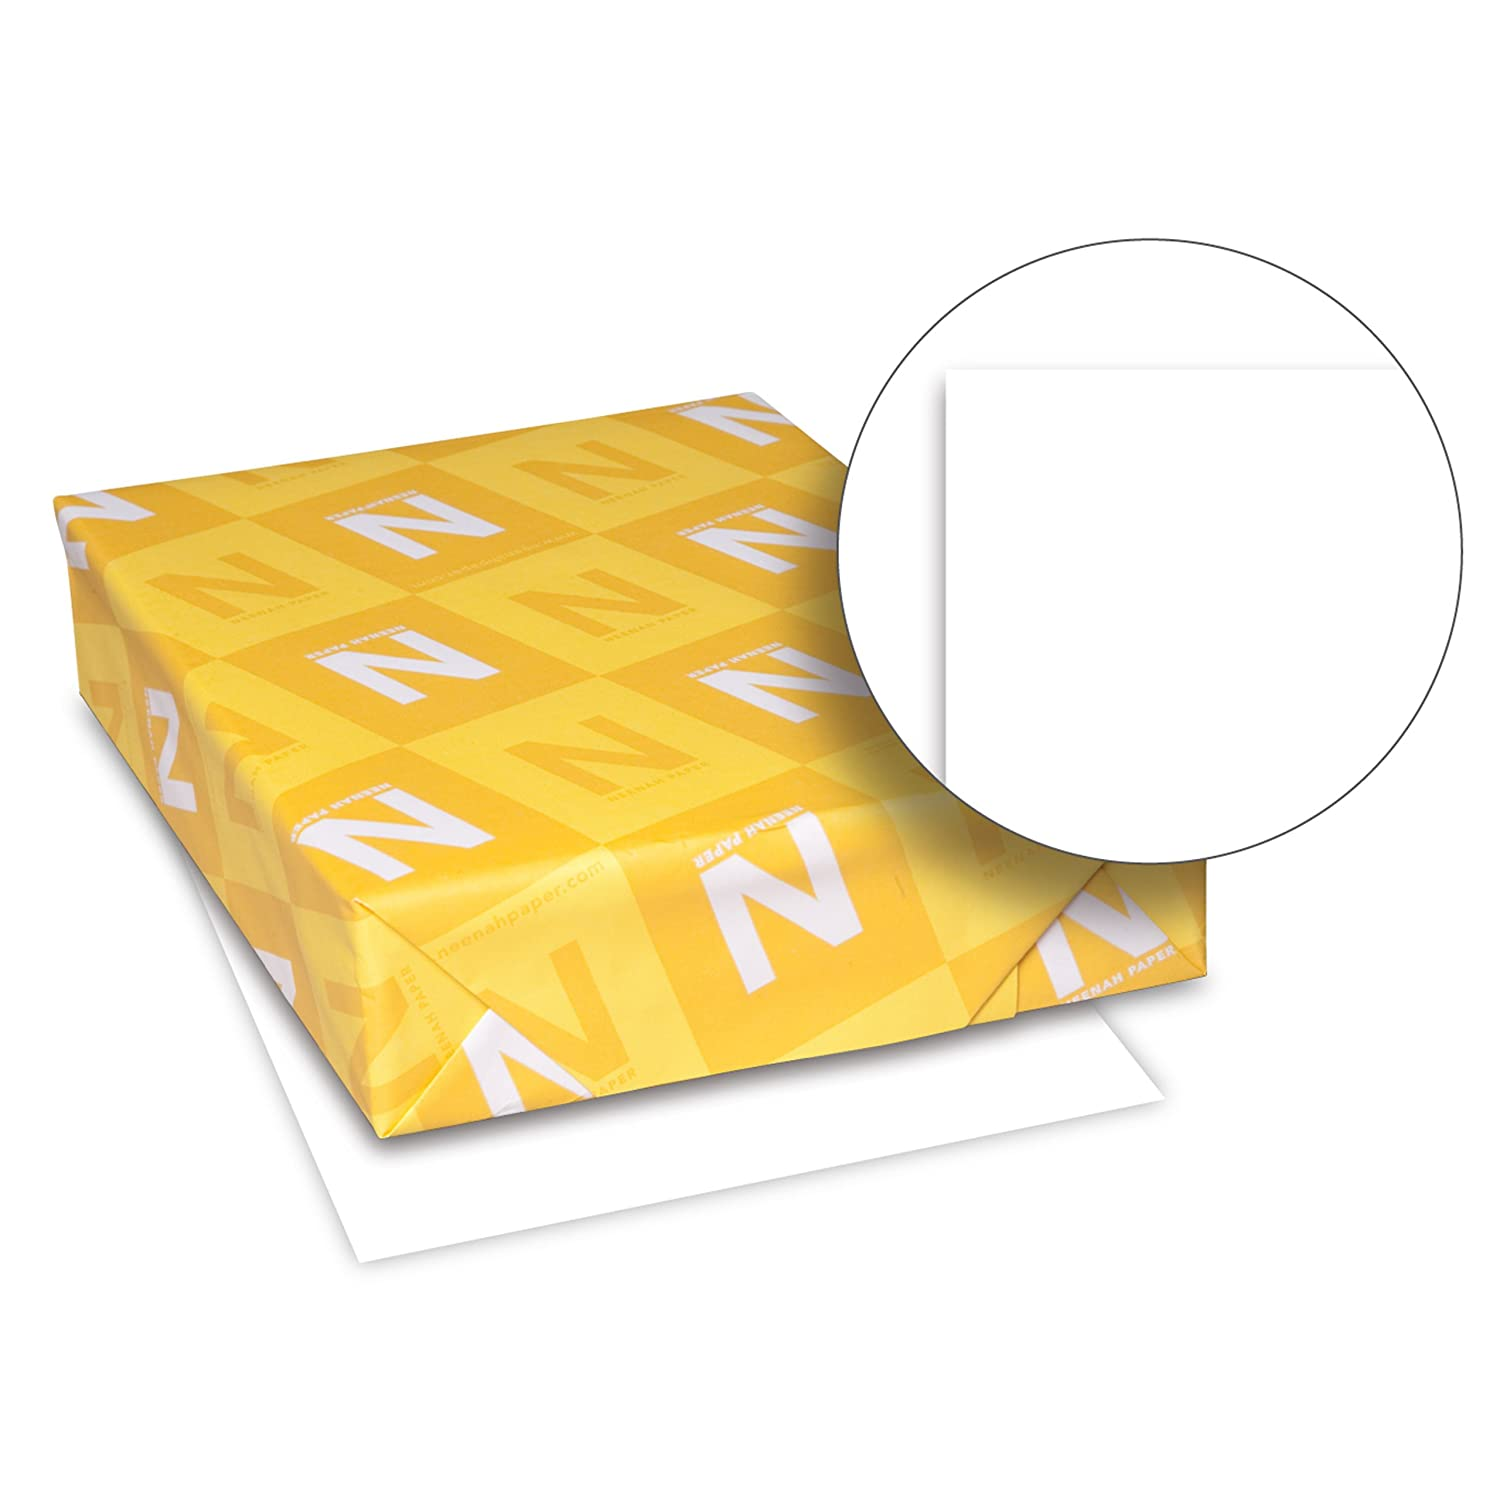 Amazon.com : Neenah Royal Cotton Writing Paper, Letter 8.5 X 11 Inches, 24  Pound, Bright White 96 Brightness, 500 Sheets (29696) : Office Products